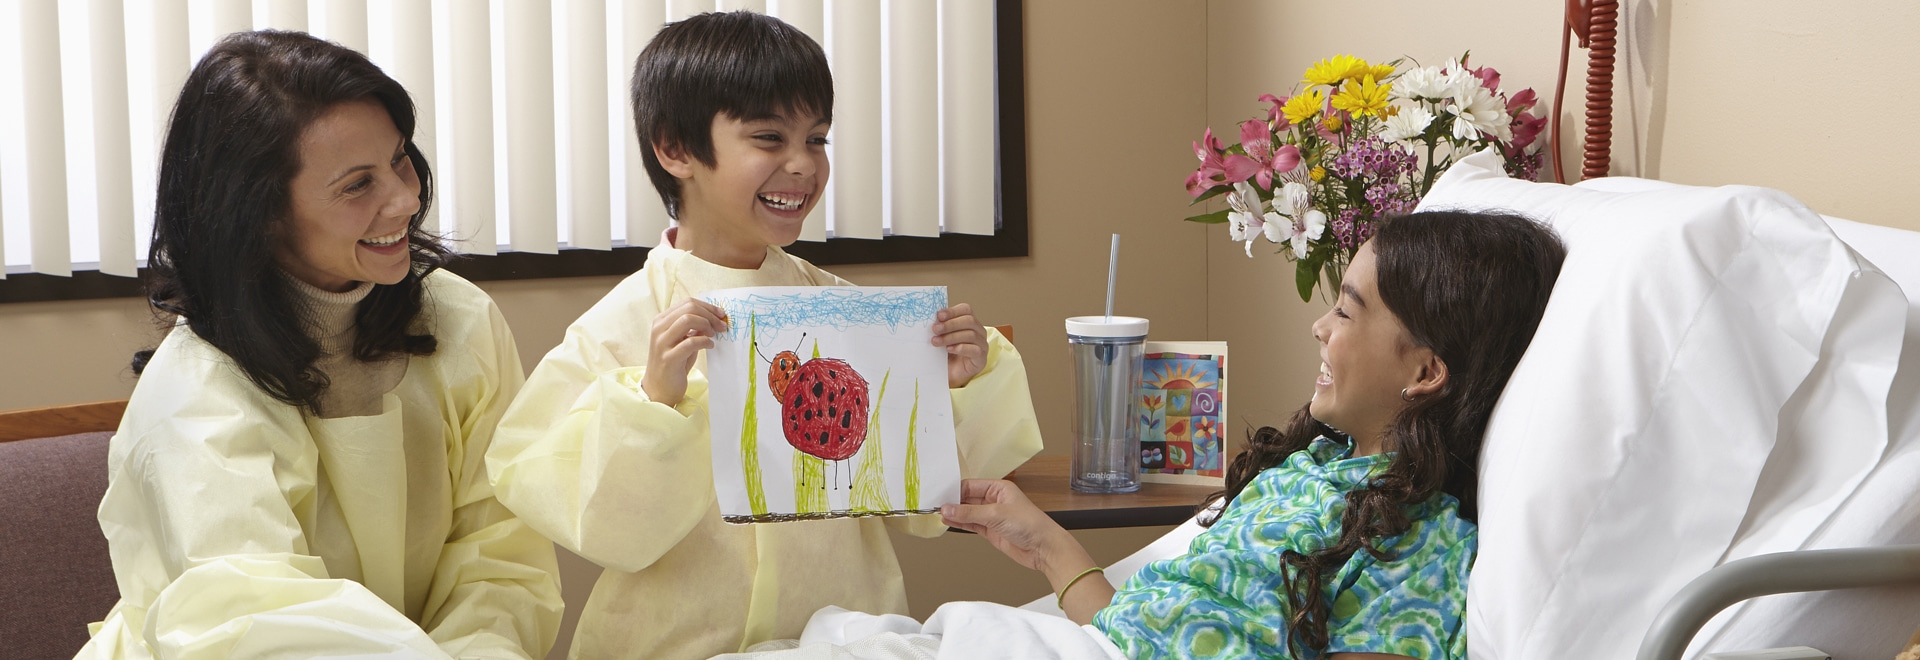 SafeCare Pediatric Disposable Isolation Gowns - 615 Macon Street ...